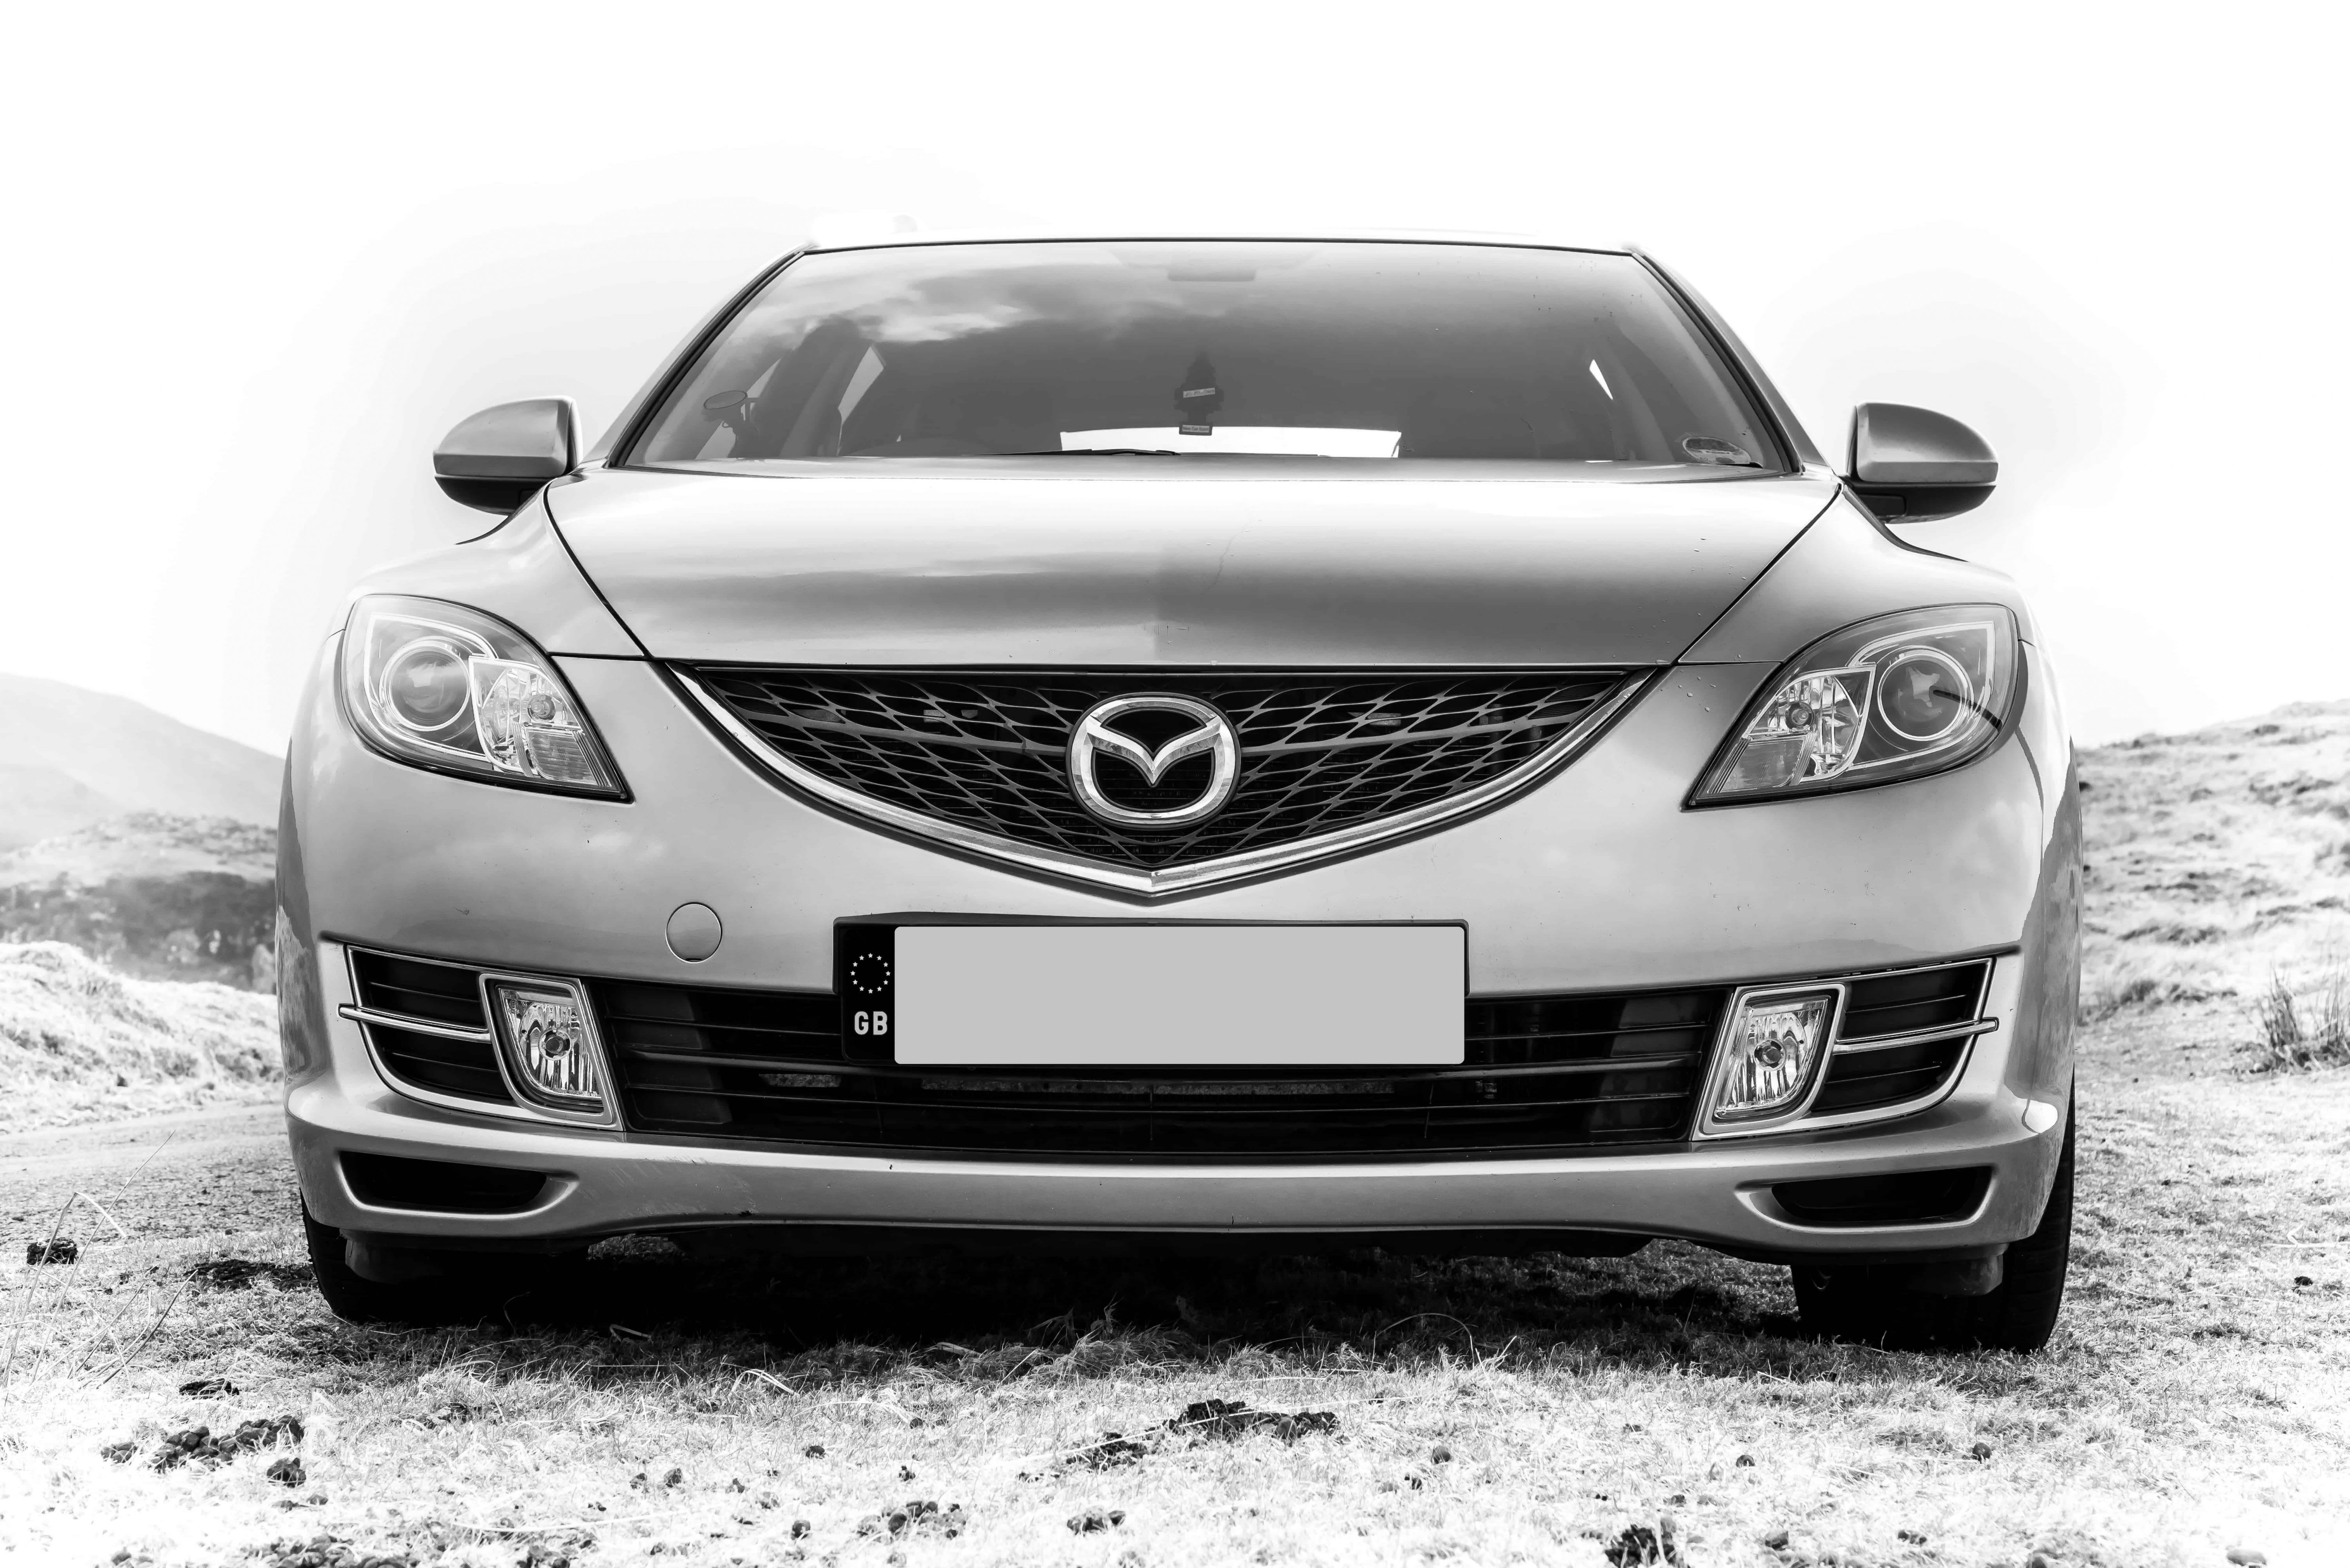 Mazda Recalls 2009-2013 Mazda6 Vehicles Due To Corrosion-Caused Steering Issue